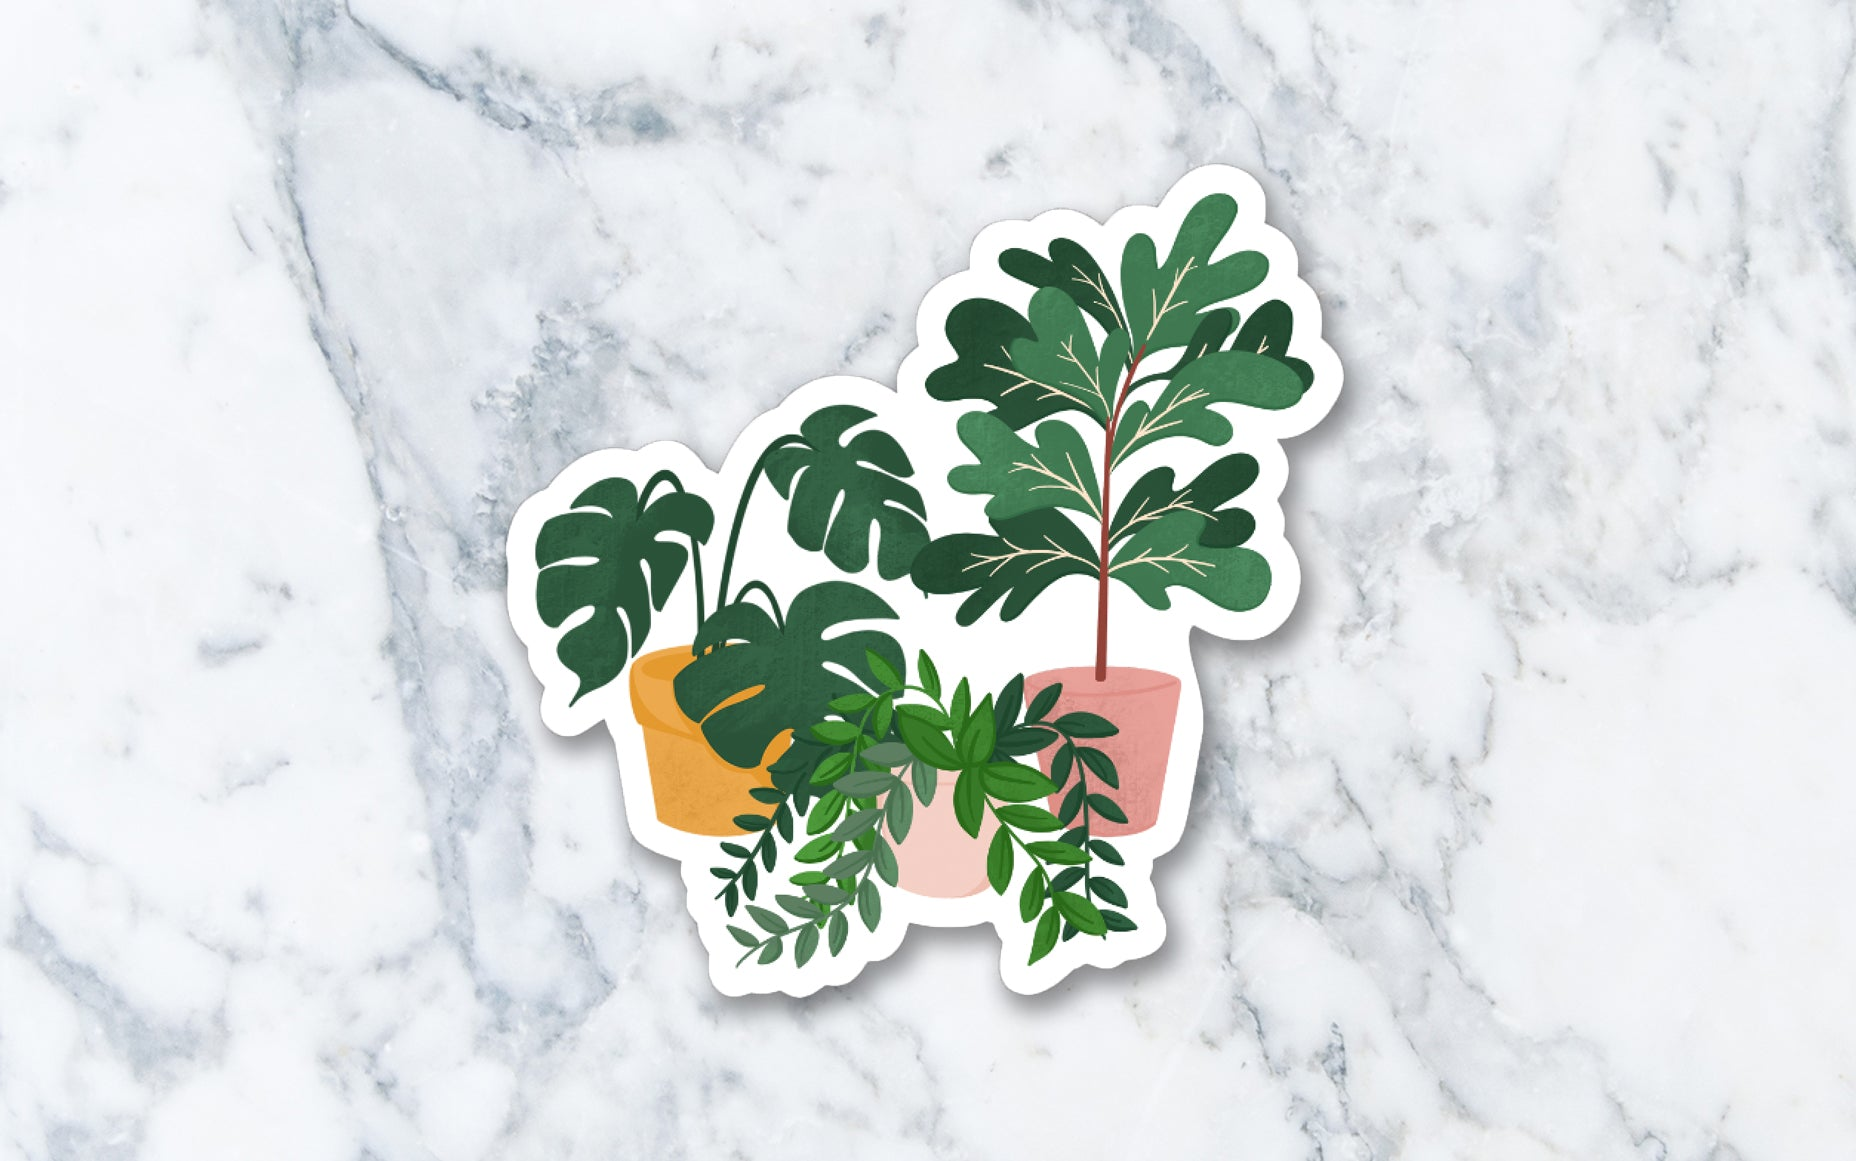 Plant Lover - Vinyl Die-cut Sticker